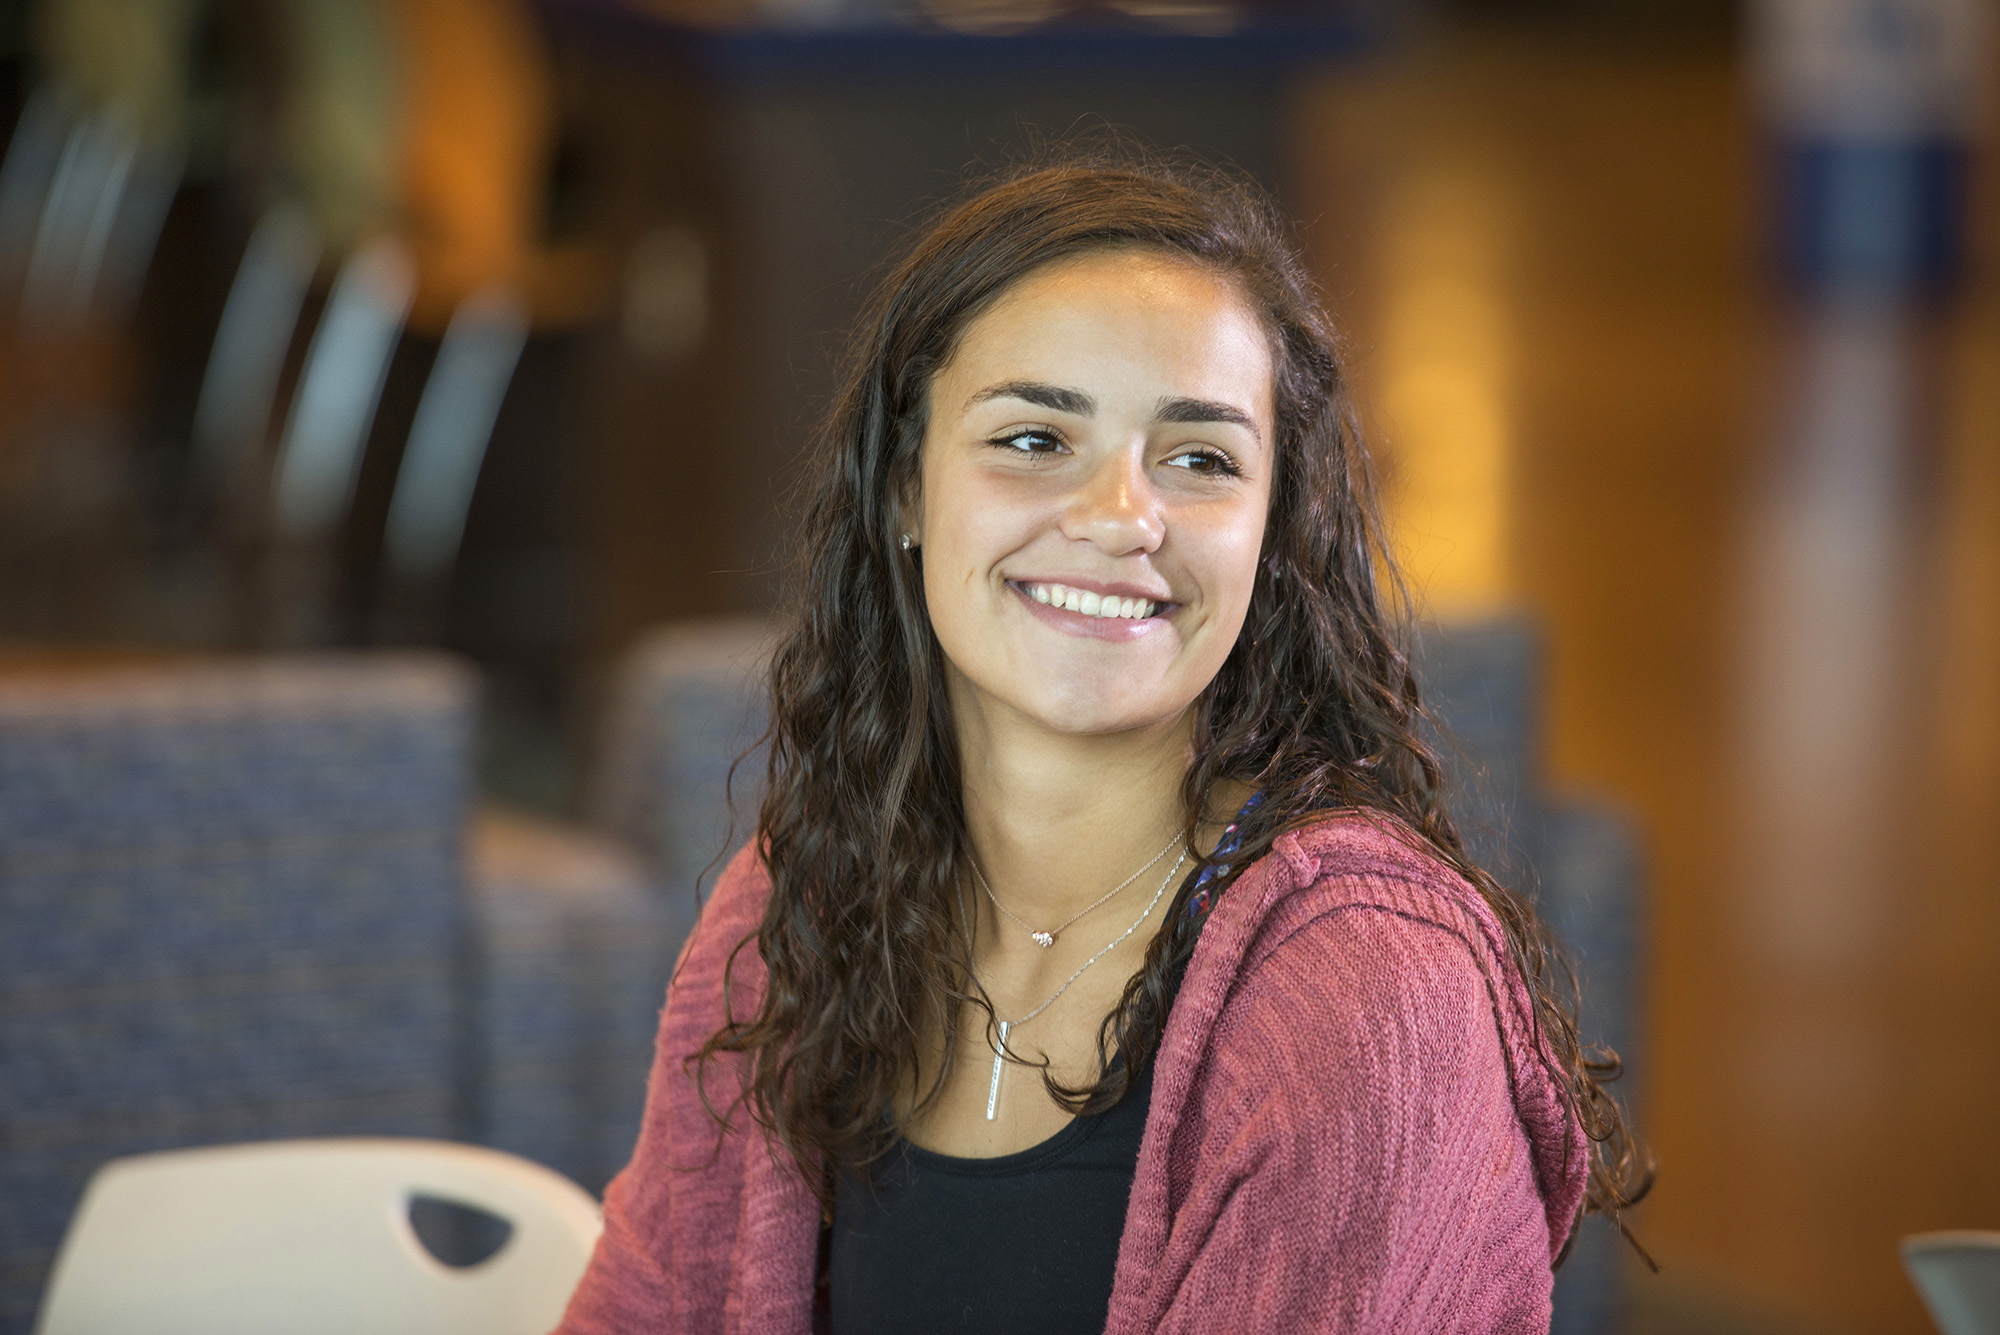 A female student smiles in the Student Center.